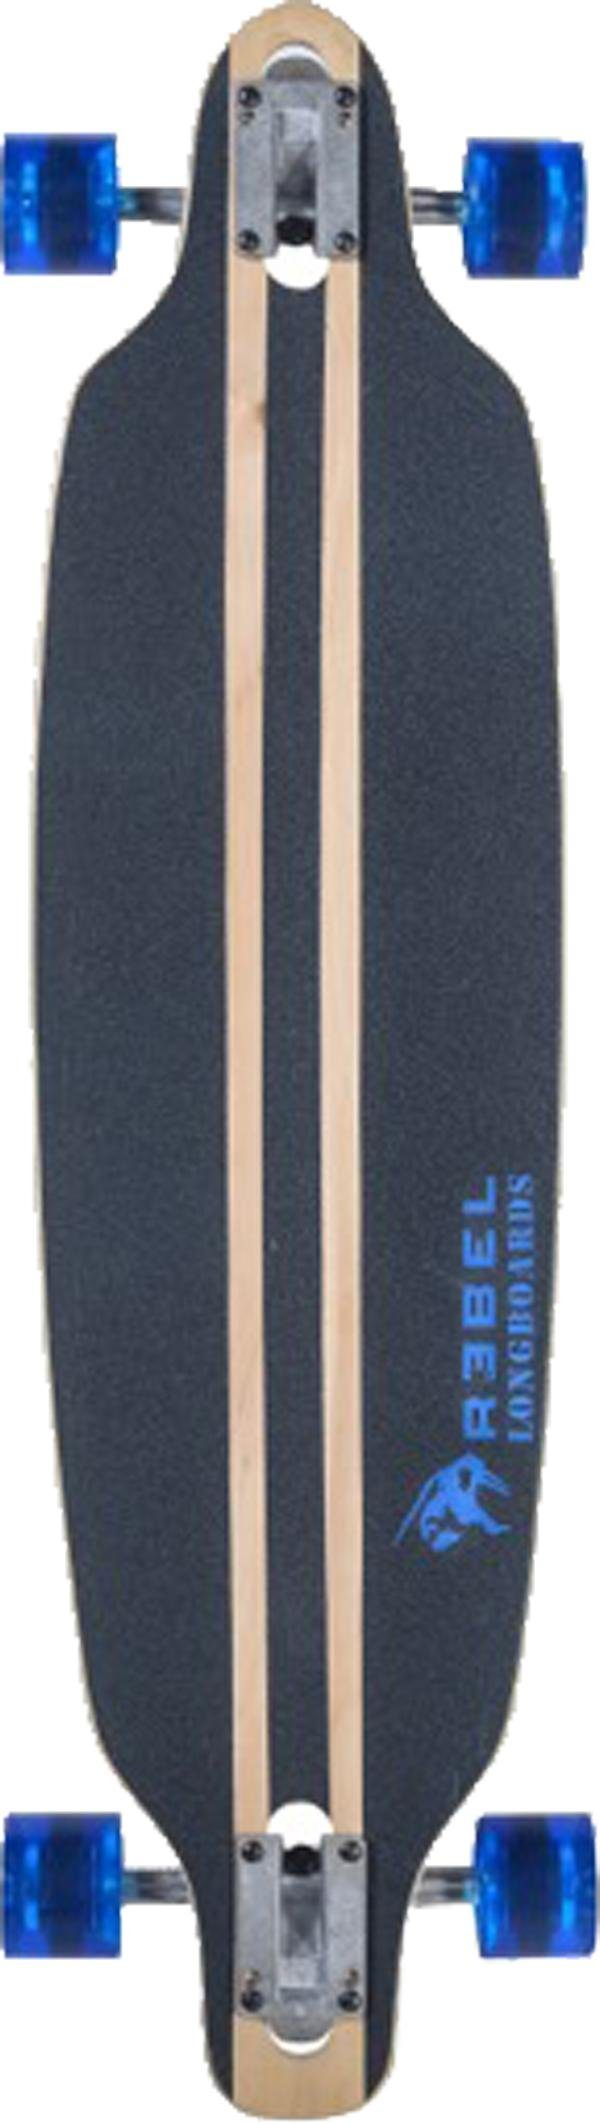 REBEL Longboard »Pacific Palisades blue«